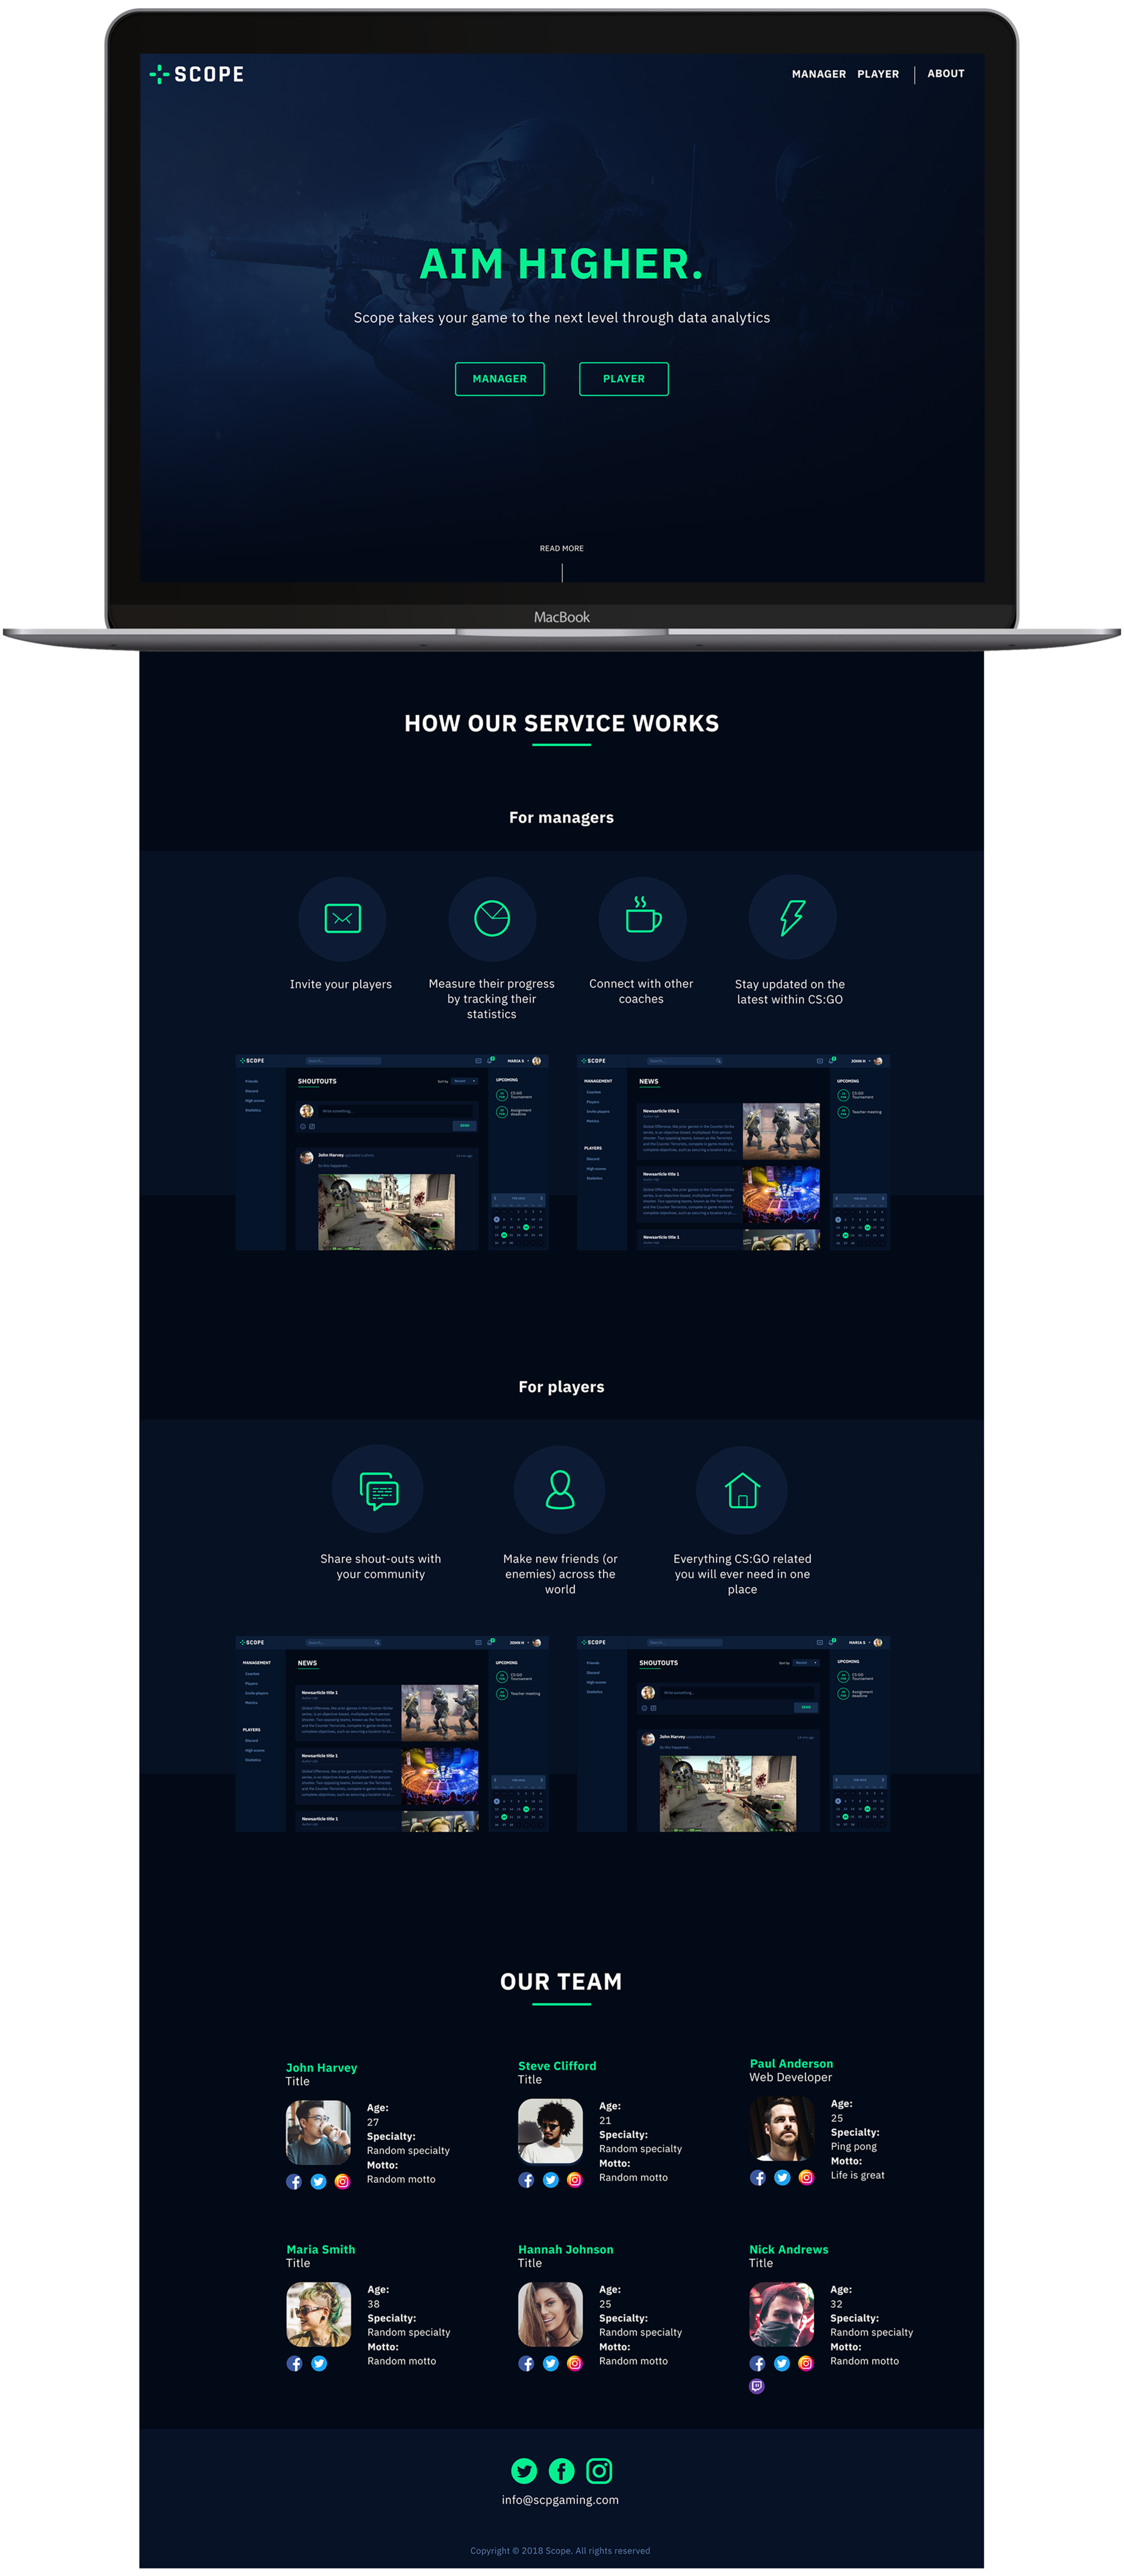 The final design, here seen in the landing page, that we also built in Wordpress.